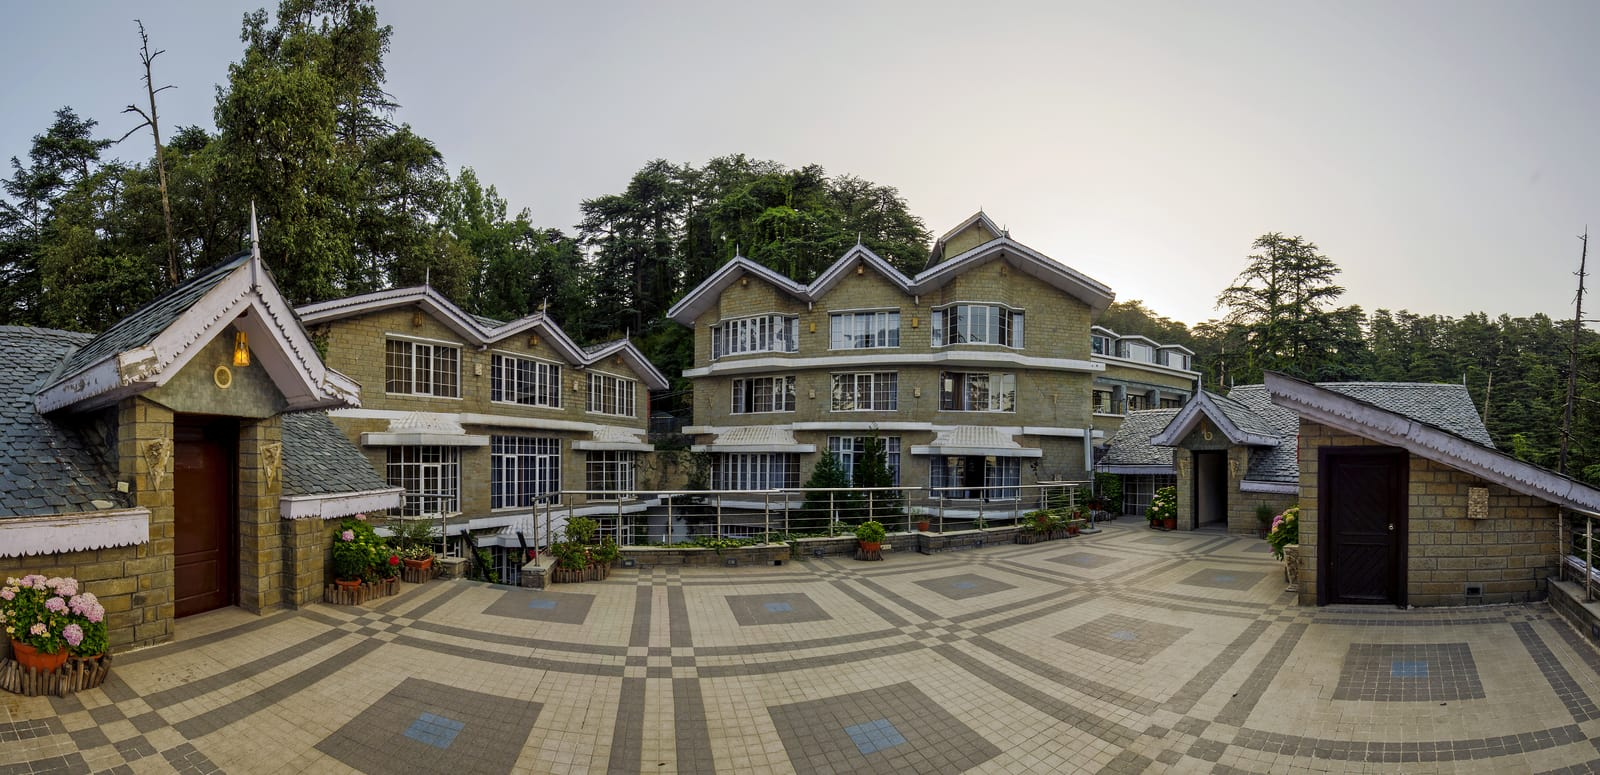 20 Best Resorts In Shimla